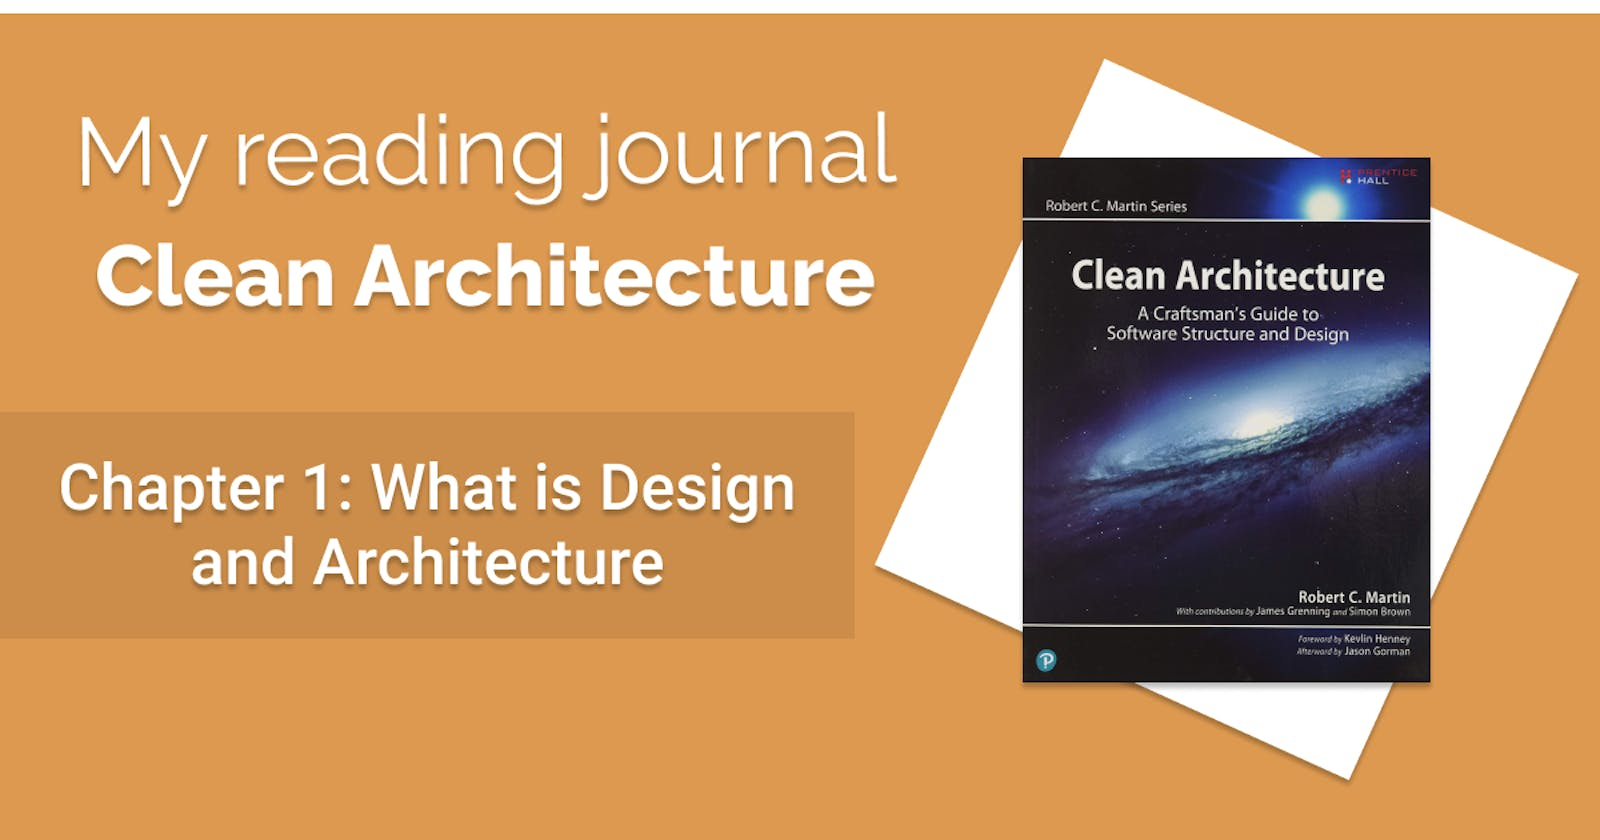 My reading journal: Clean Architecture - Chapter 1: What is Design and Architecture